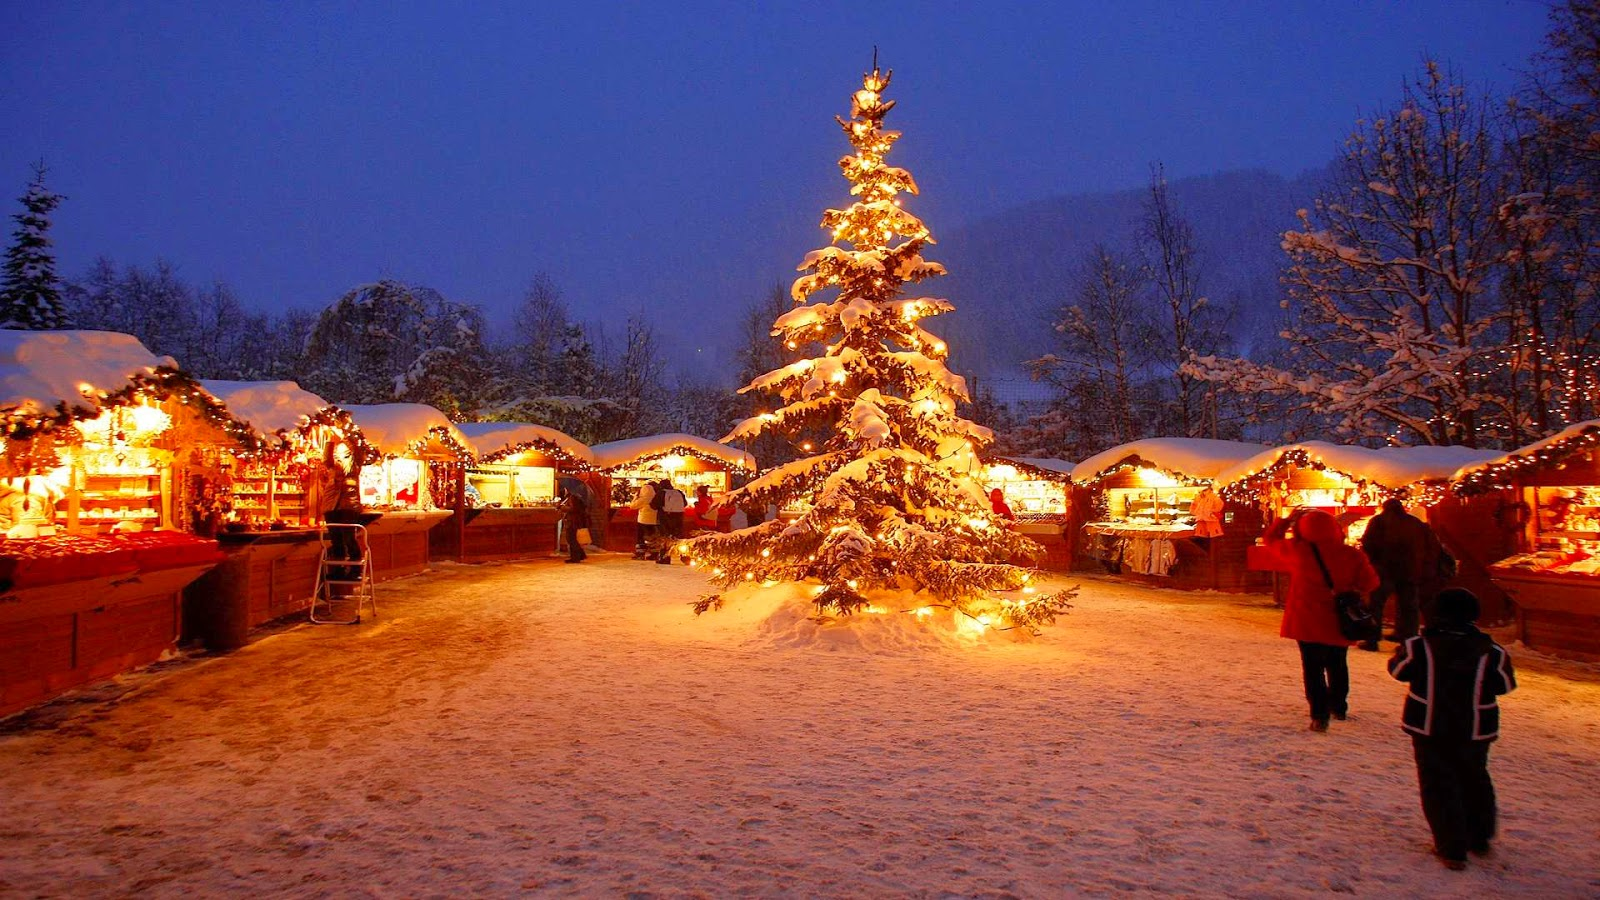 val gardena gr den dolomites weihnachten in gr den. Black Bedroom Furniture Sets. Home Design Ideas